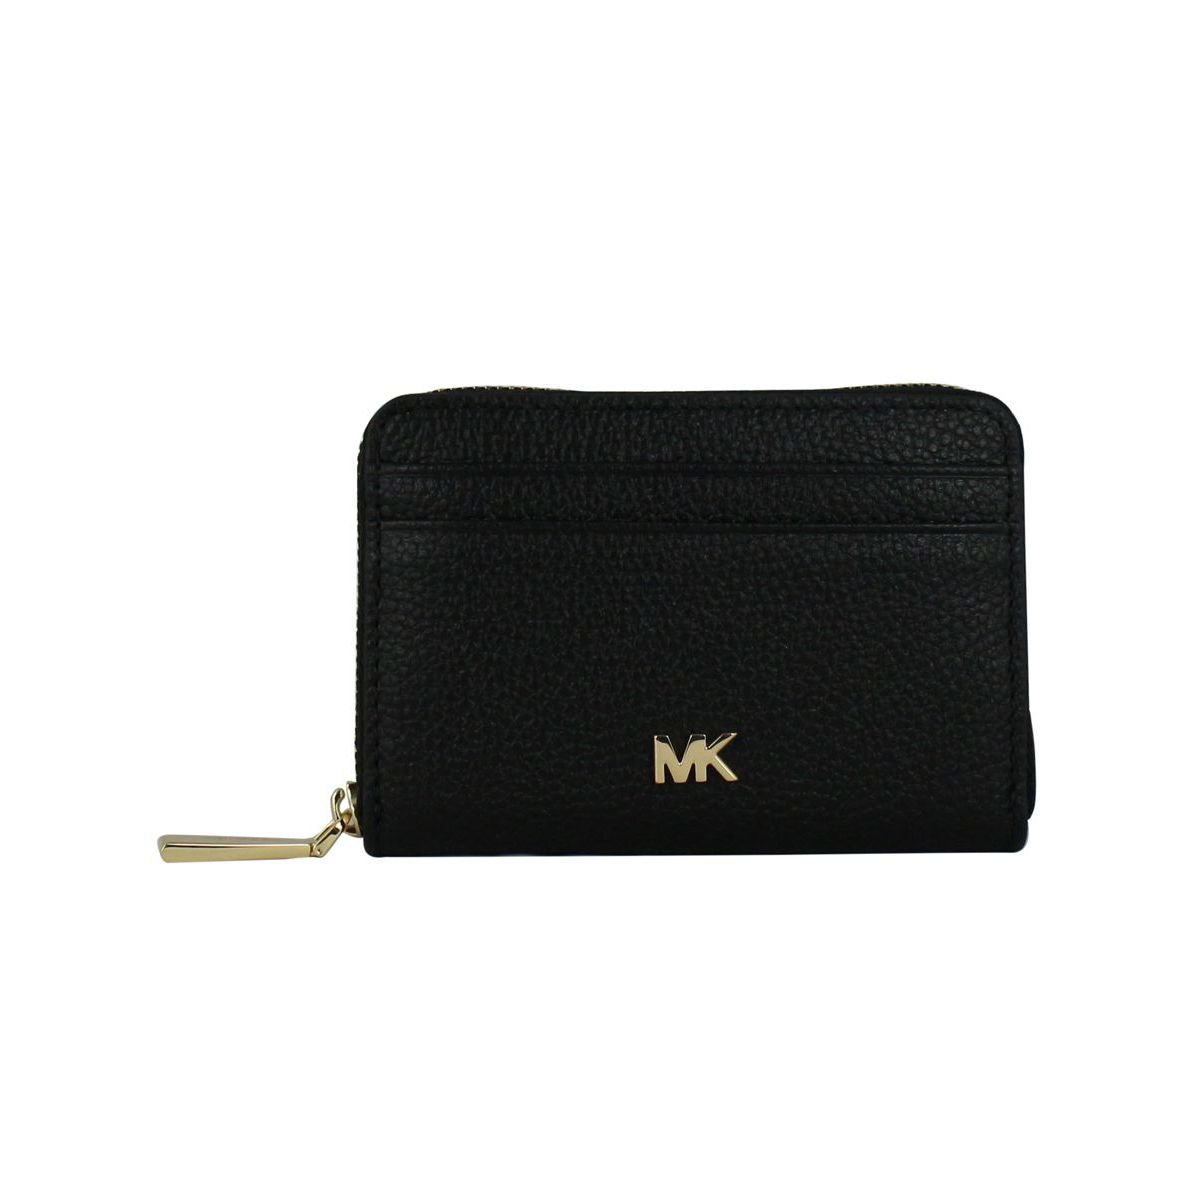 Document holder with logo Black Michael Kors